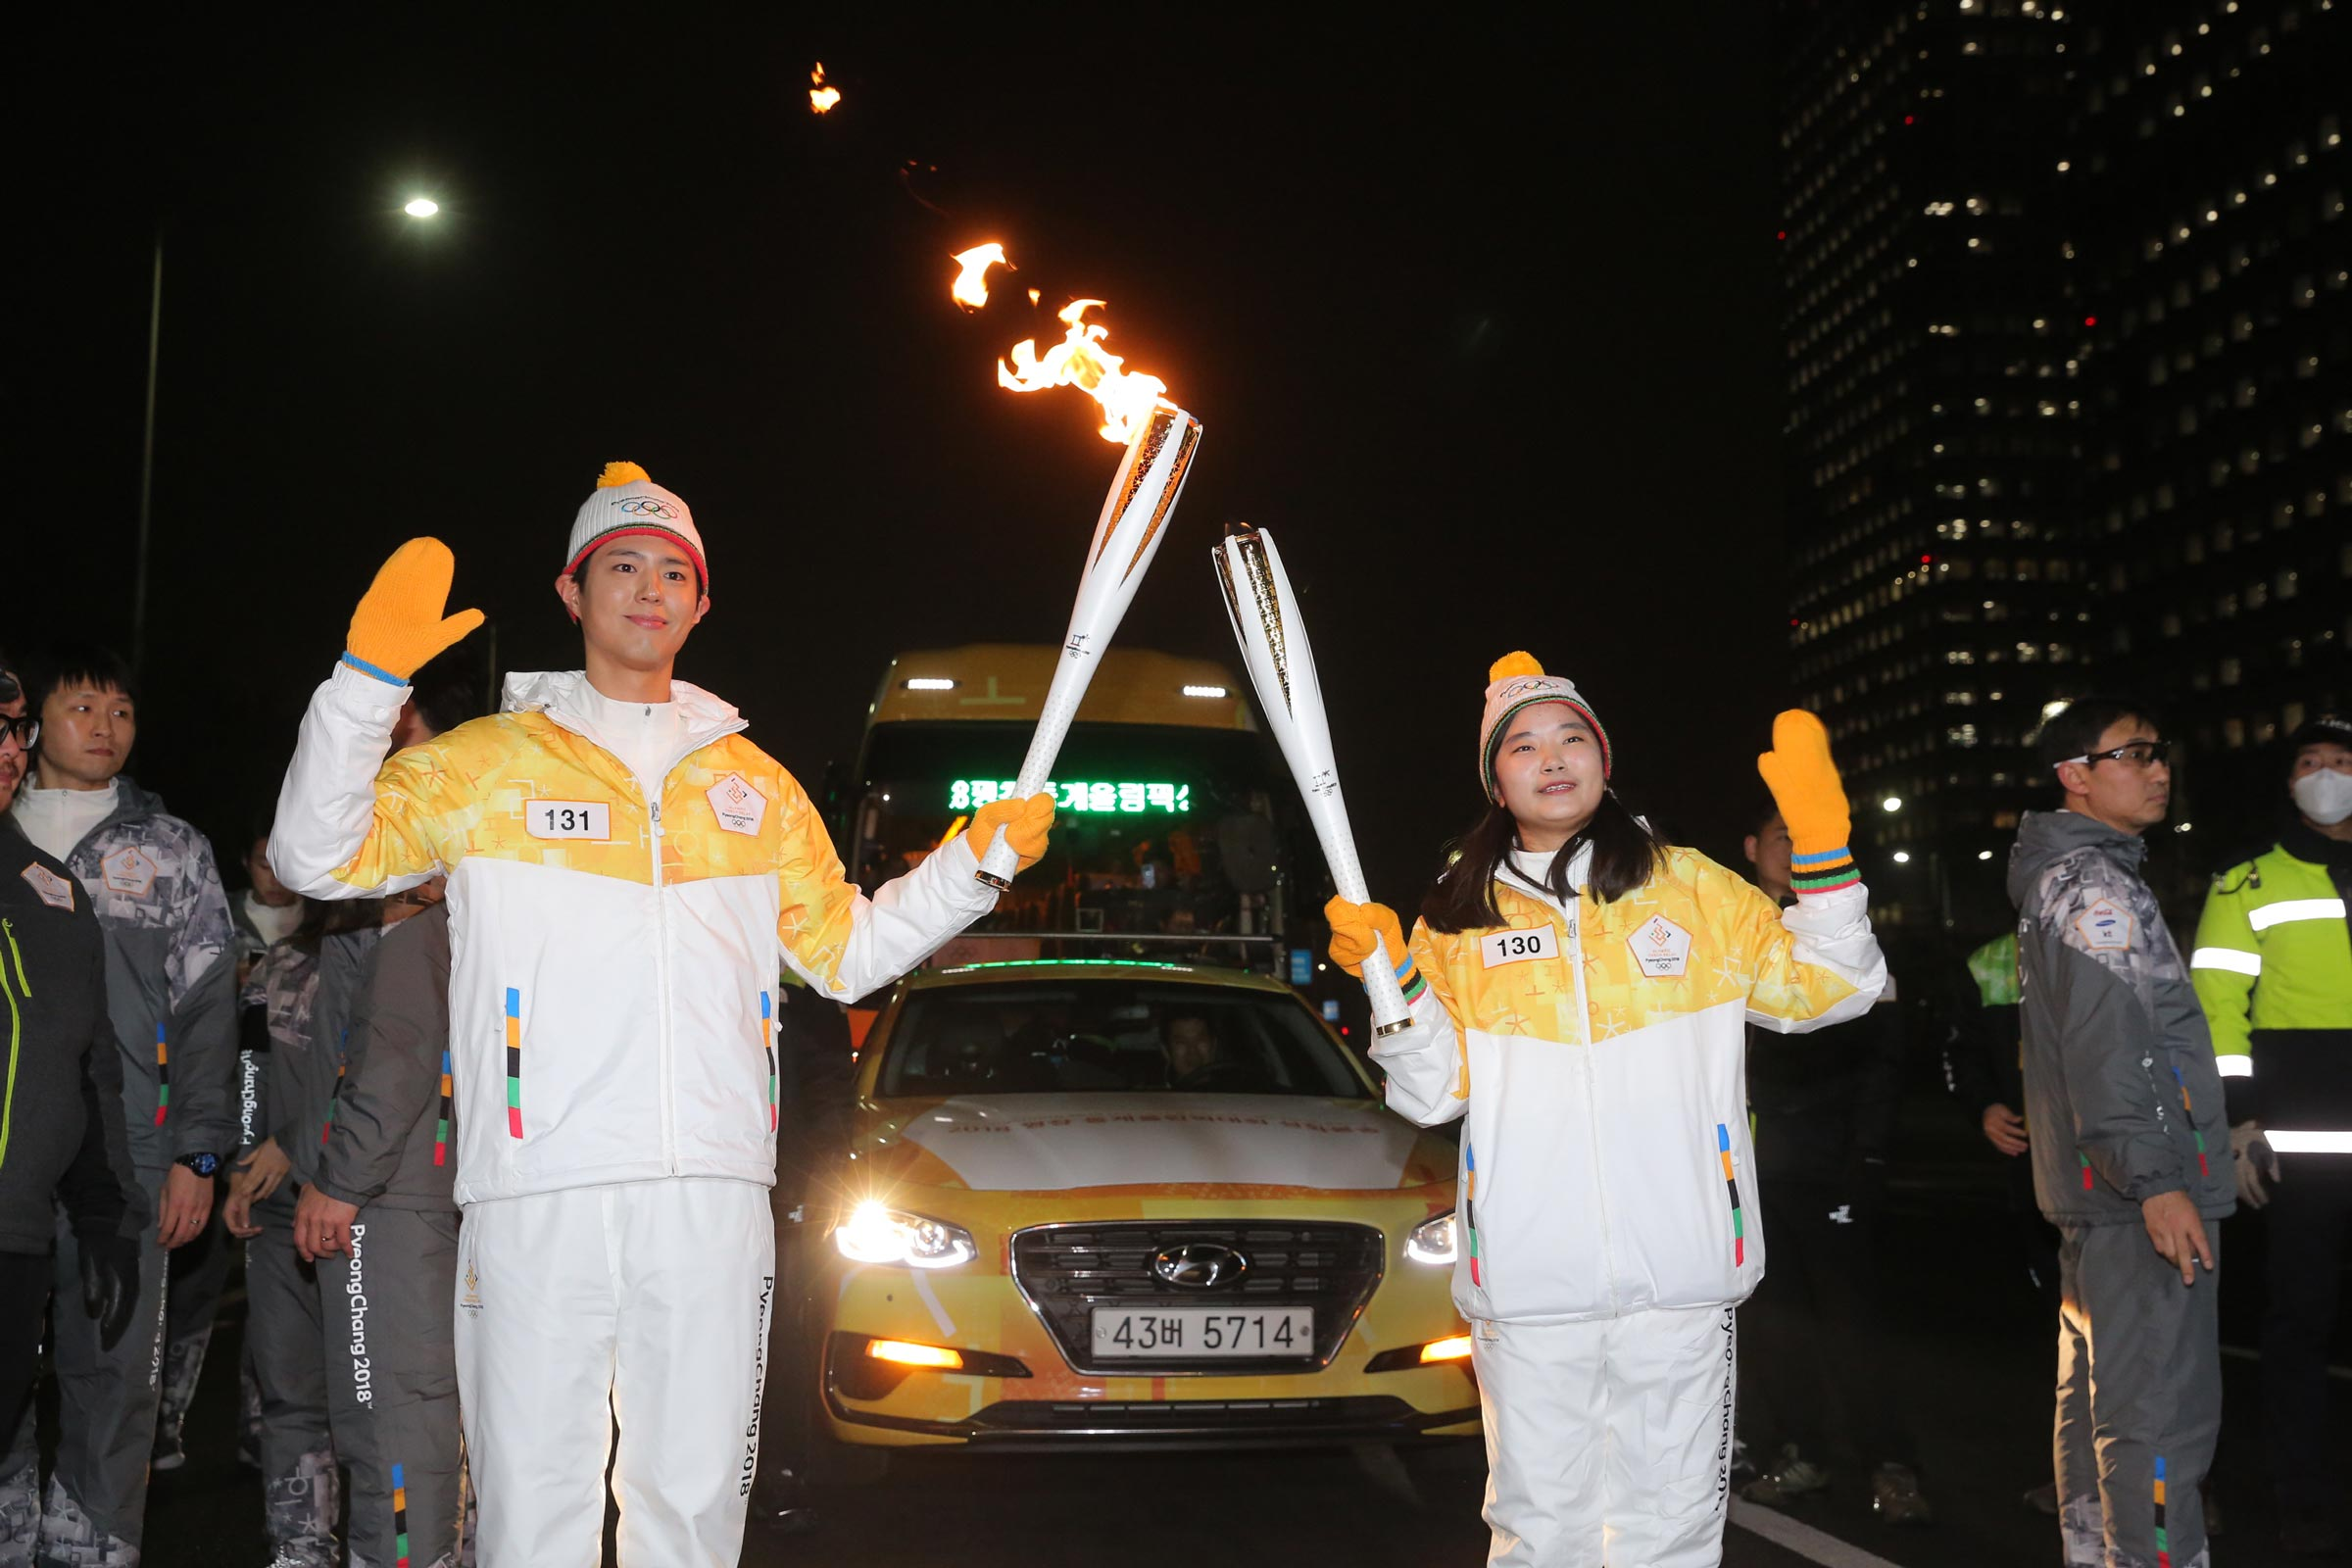 PyeongChang 2018 Olympic Torch Relay - Day 77